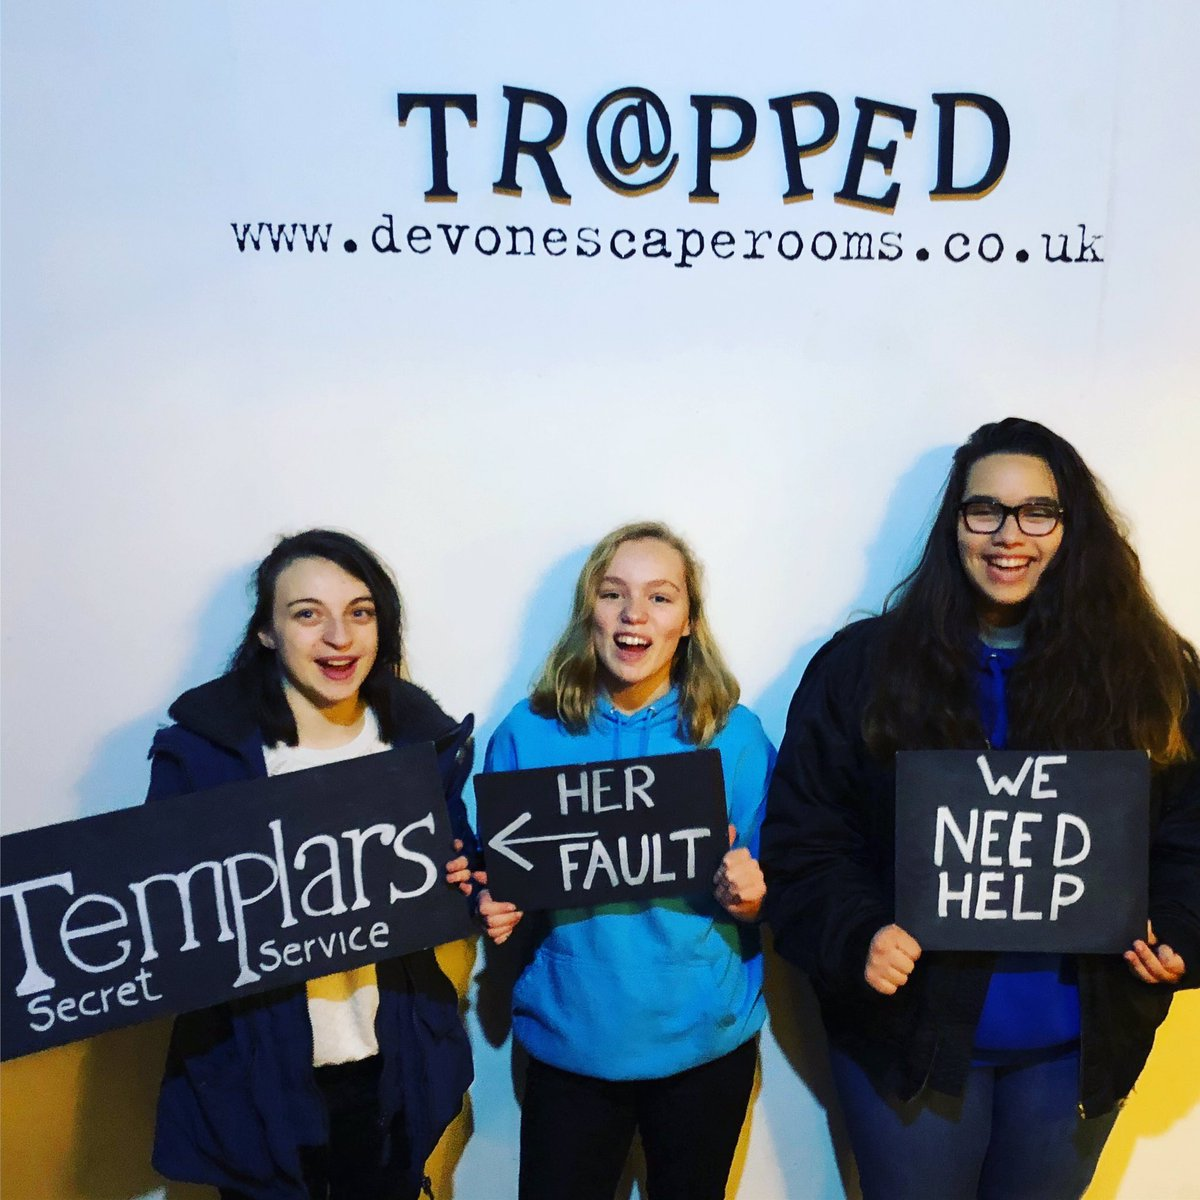 Trapped Escape Room Okehampton's photo on Rogue